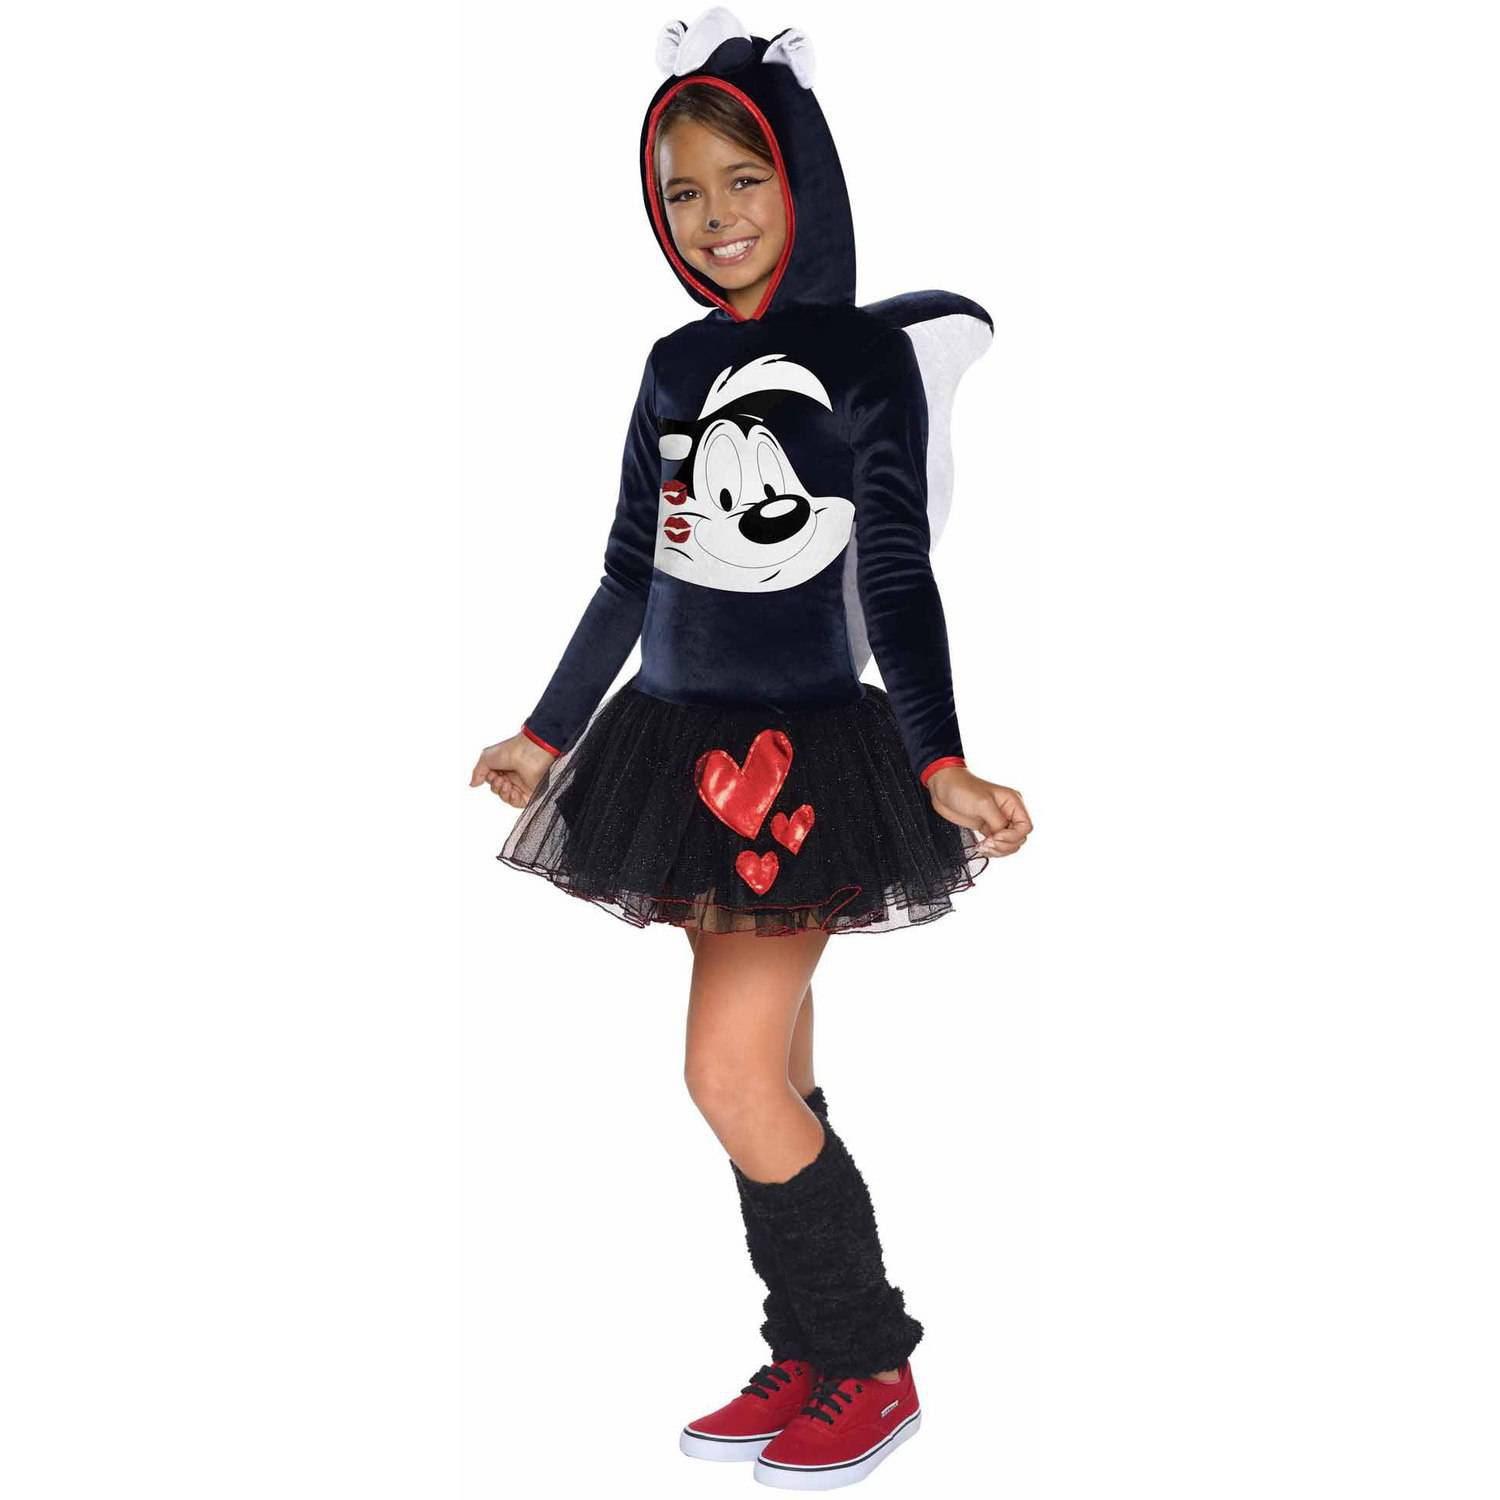 sc 1 st  Walmart & Looney Tunes Pepe Le Pew Hooded Child Halloween Costume - Walmart.com